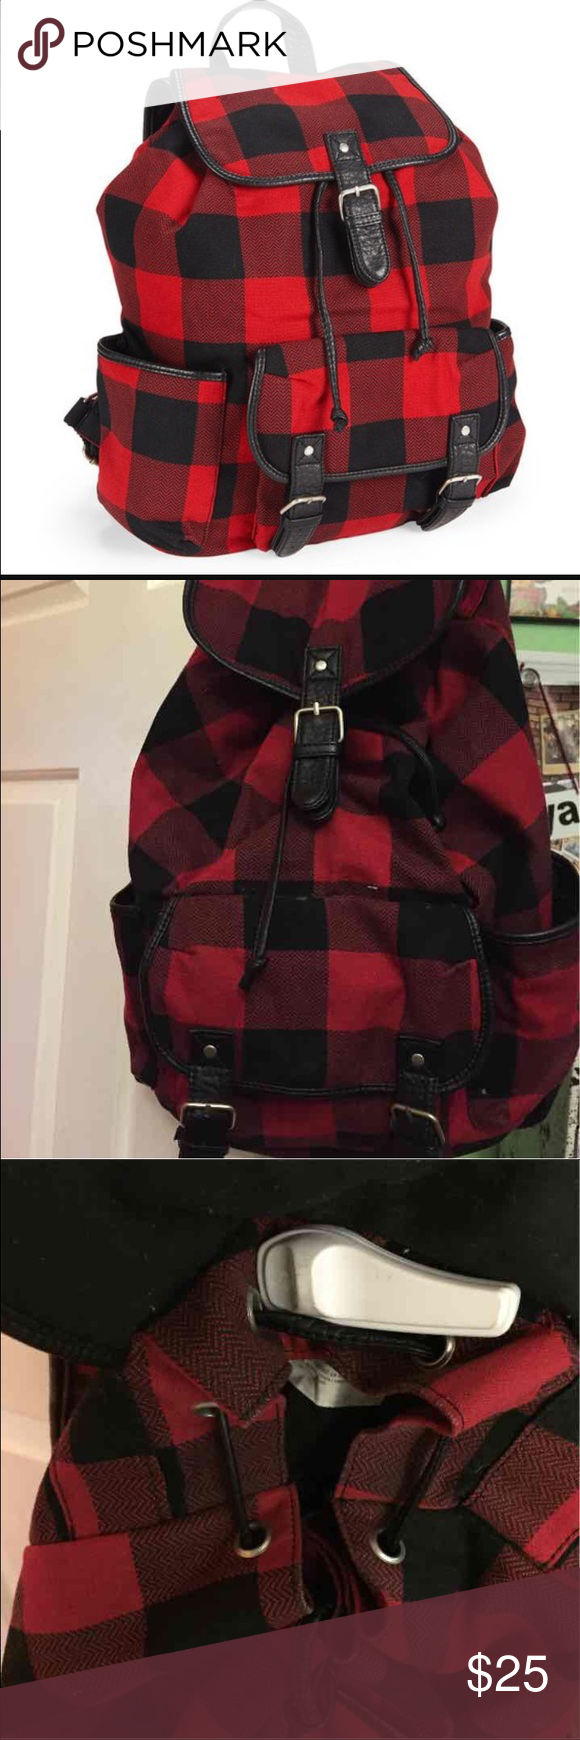 Red plaid backpack Only flaw is the lady left the thing on it but the fall covers it so it's not noticeable. BRAND NEW Aeropostale Bags Backpacks